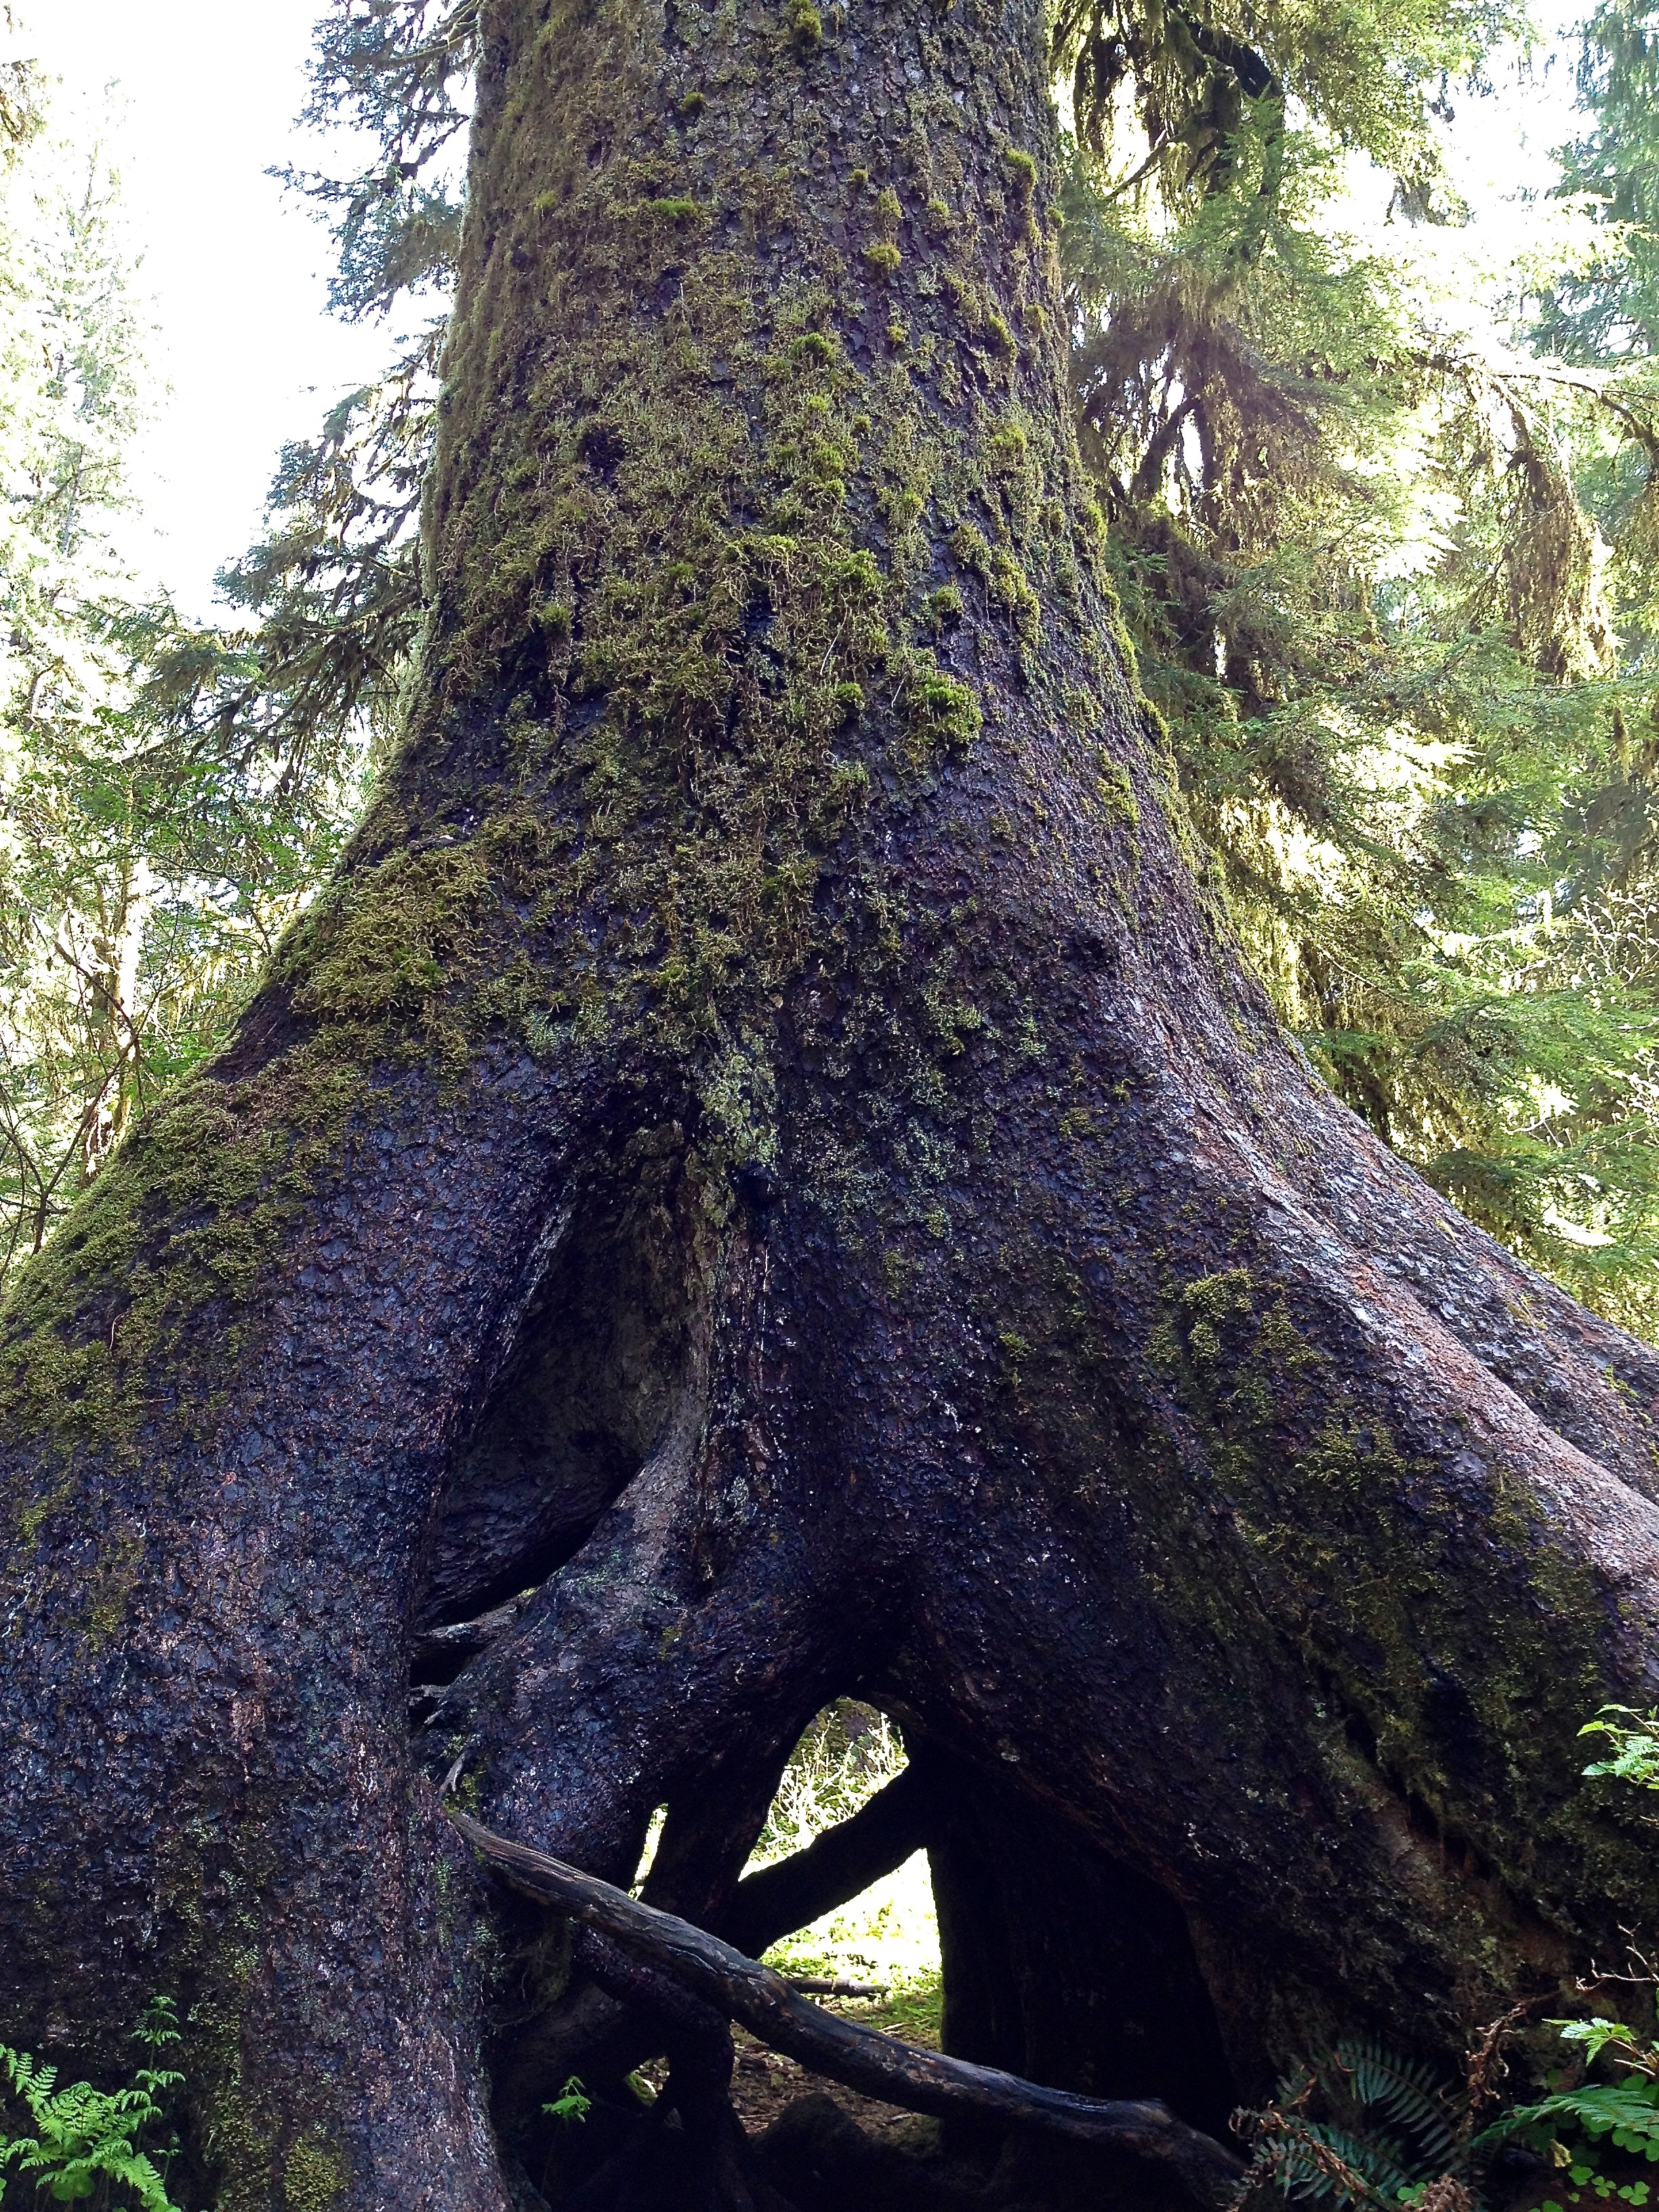 Huge tree in the Hoh Rainforest